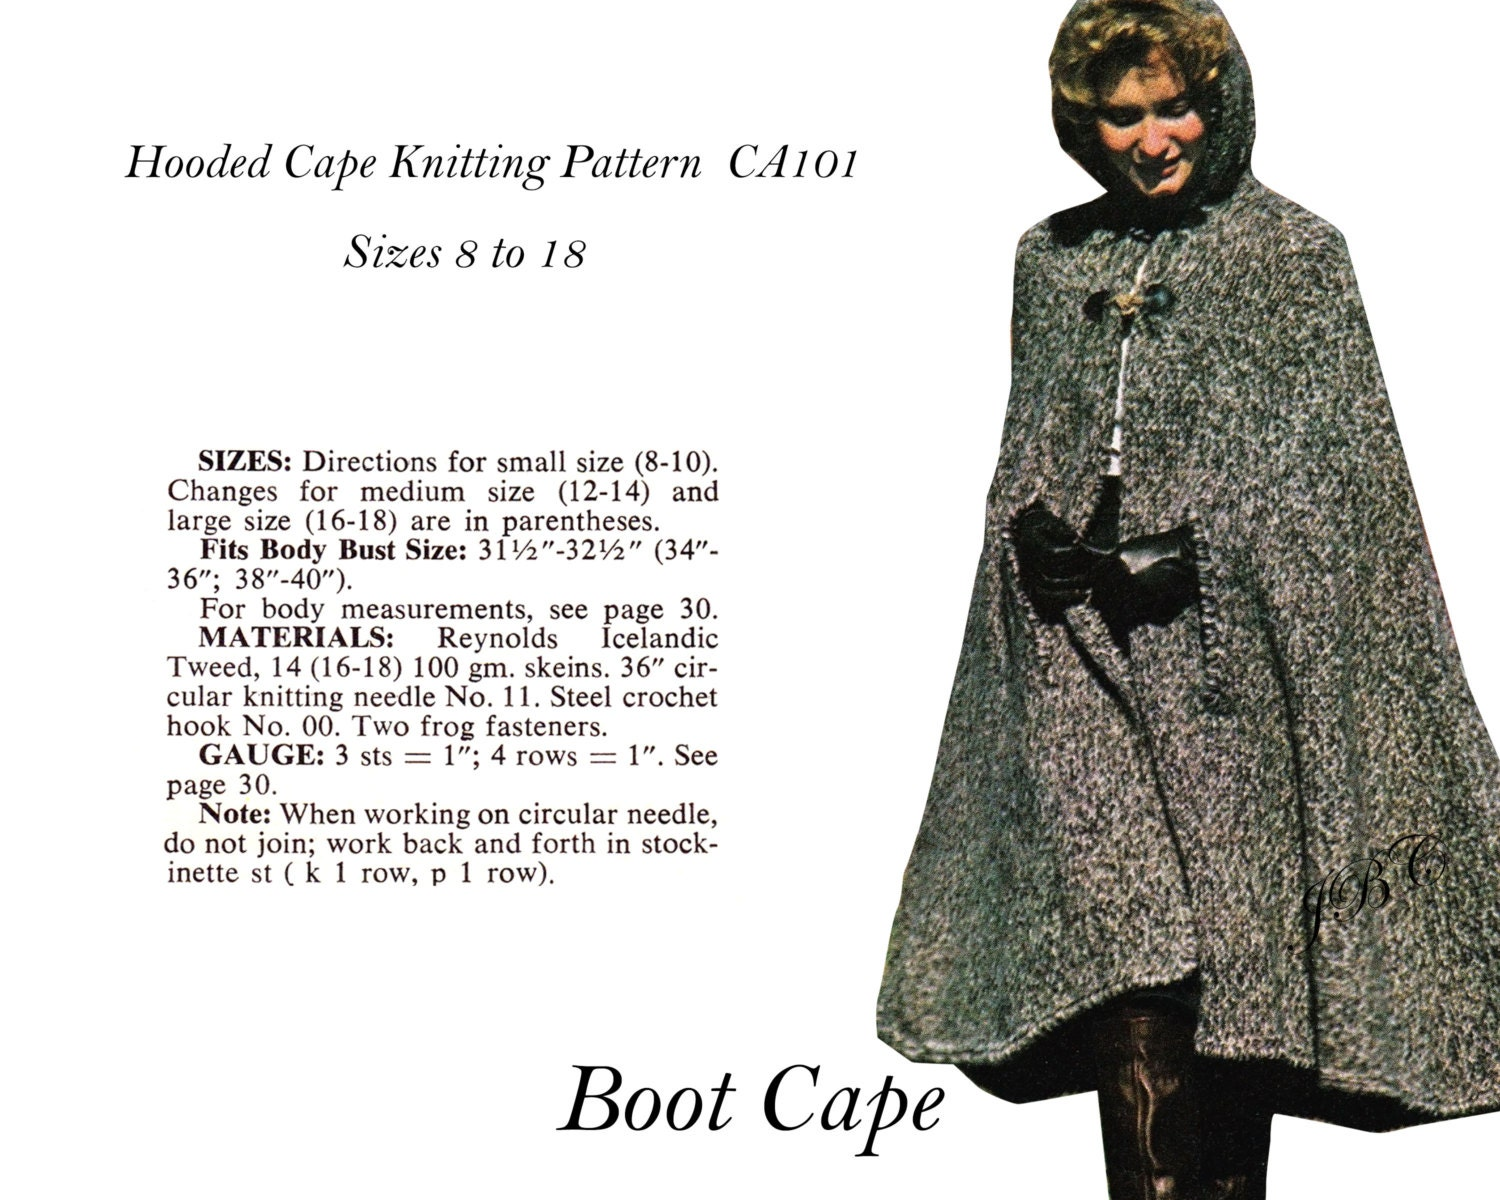 Cape pattern hooded boot cape knitting pattern pdf ca101 zoom bankloansurffo Image collections